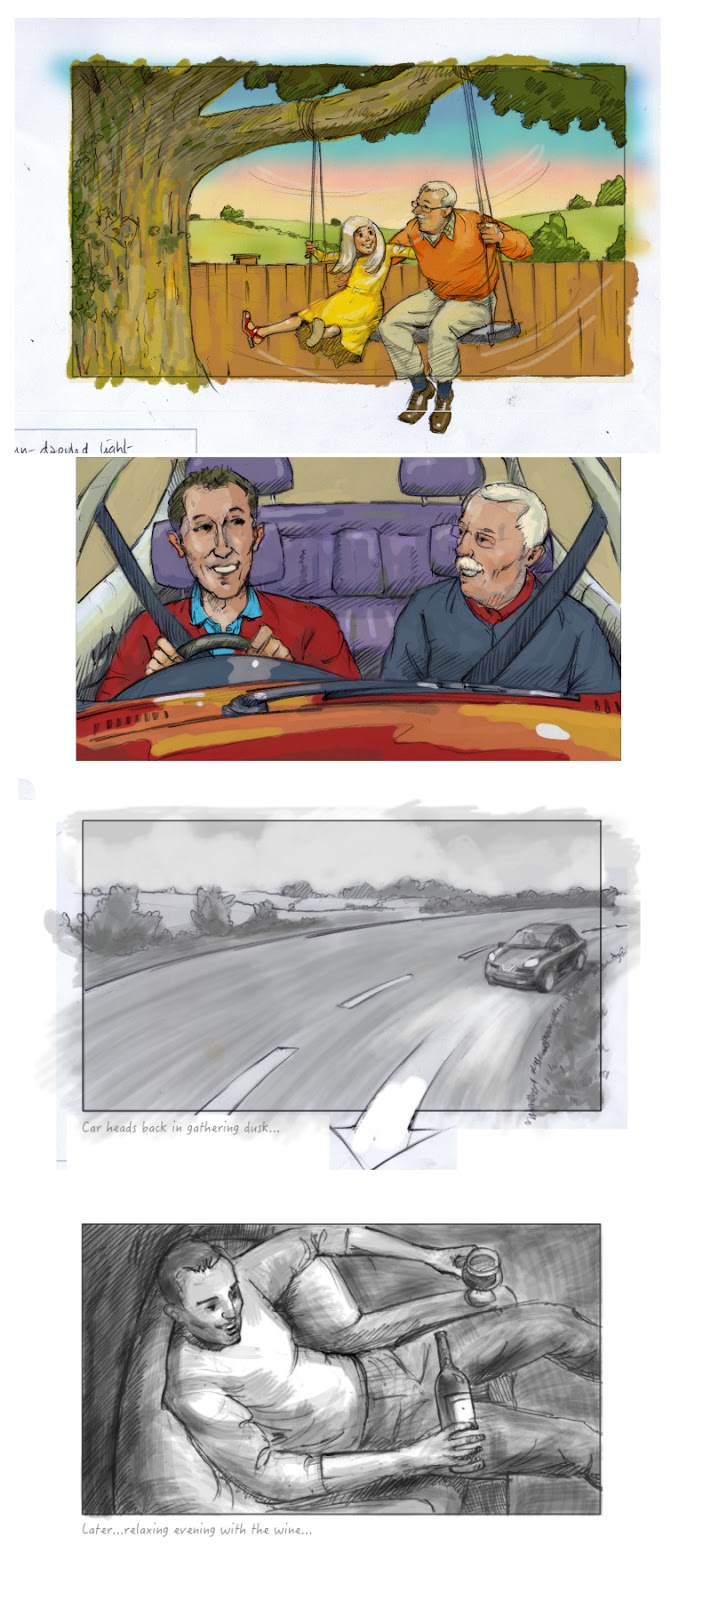 A selection of storyboard art panels for a commercial advertising project for DDFH+B